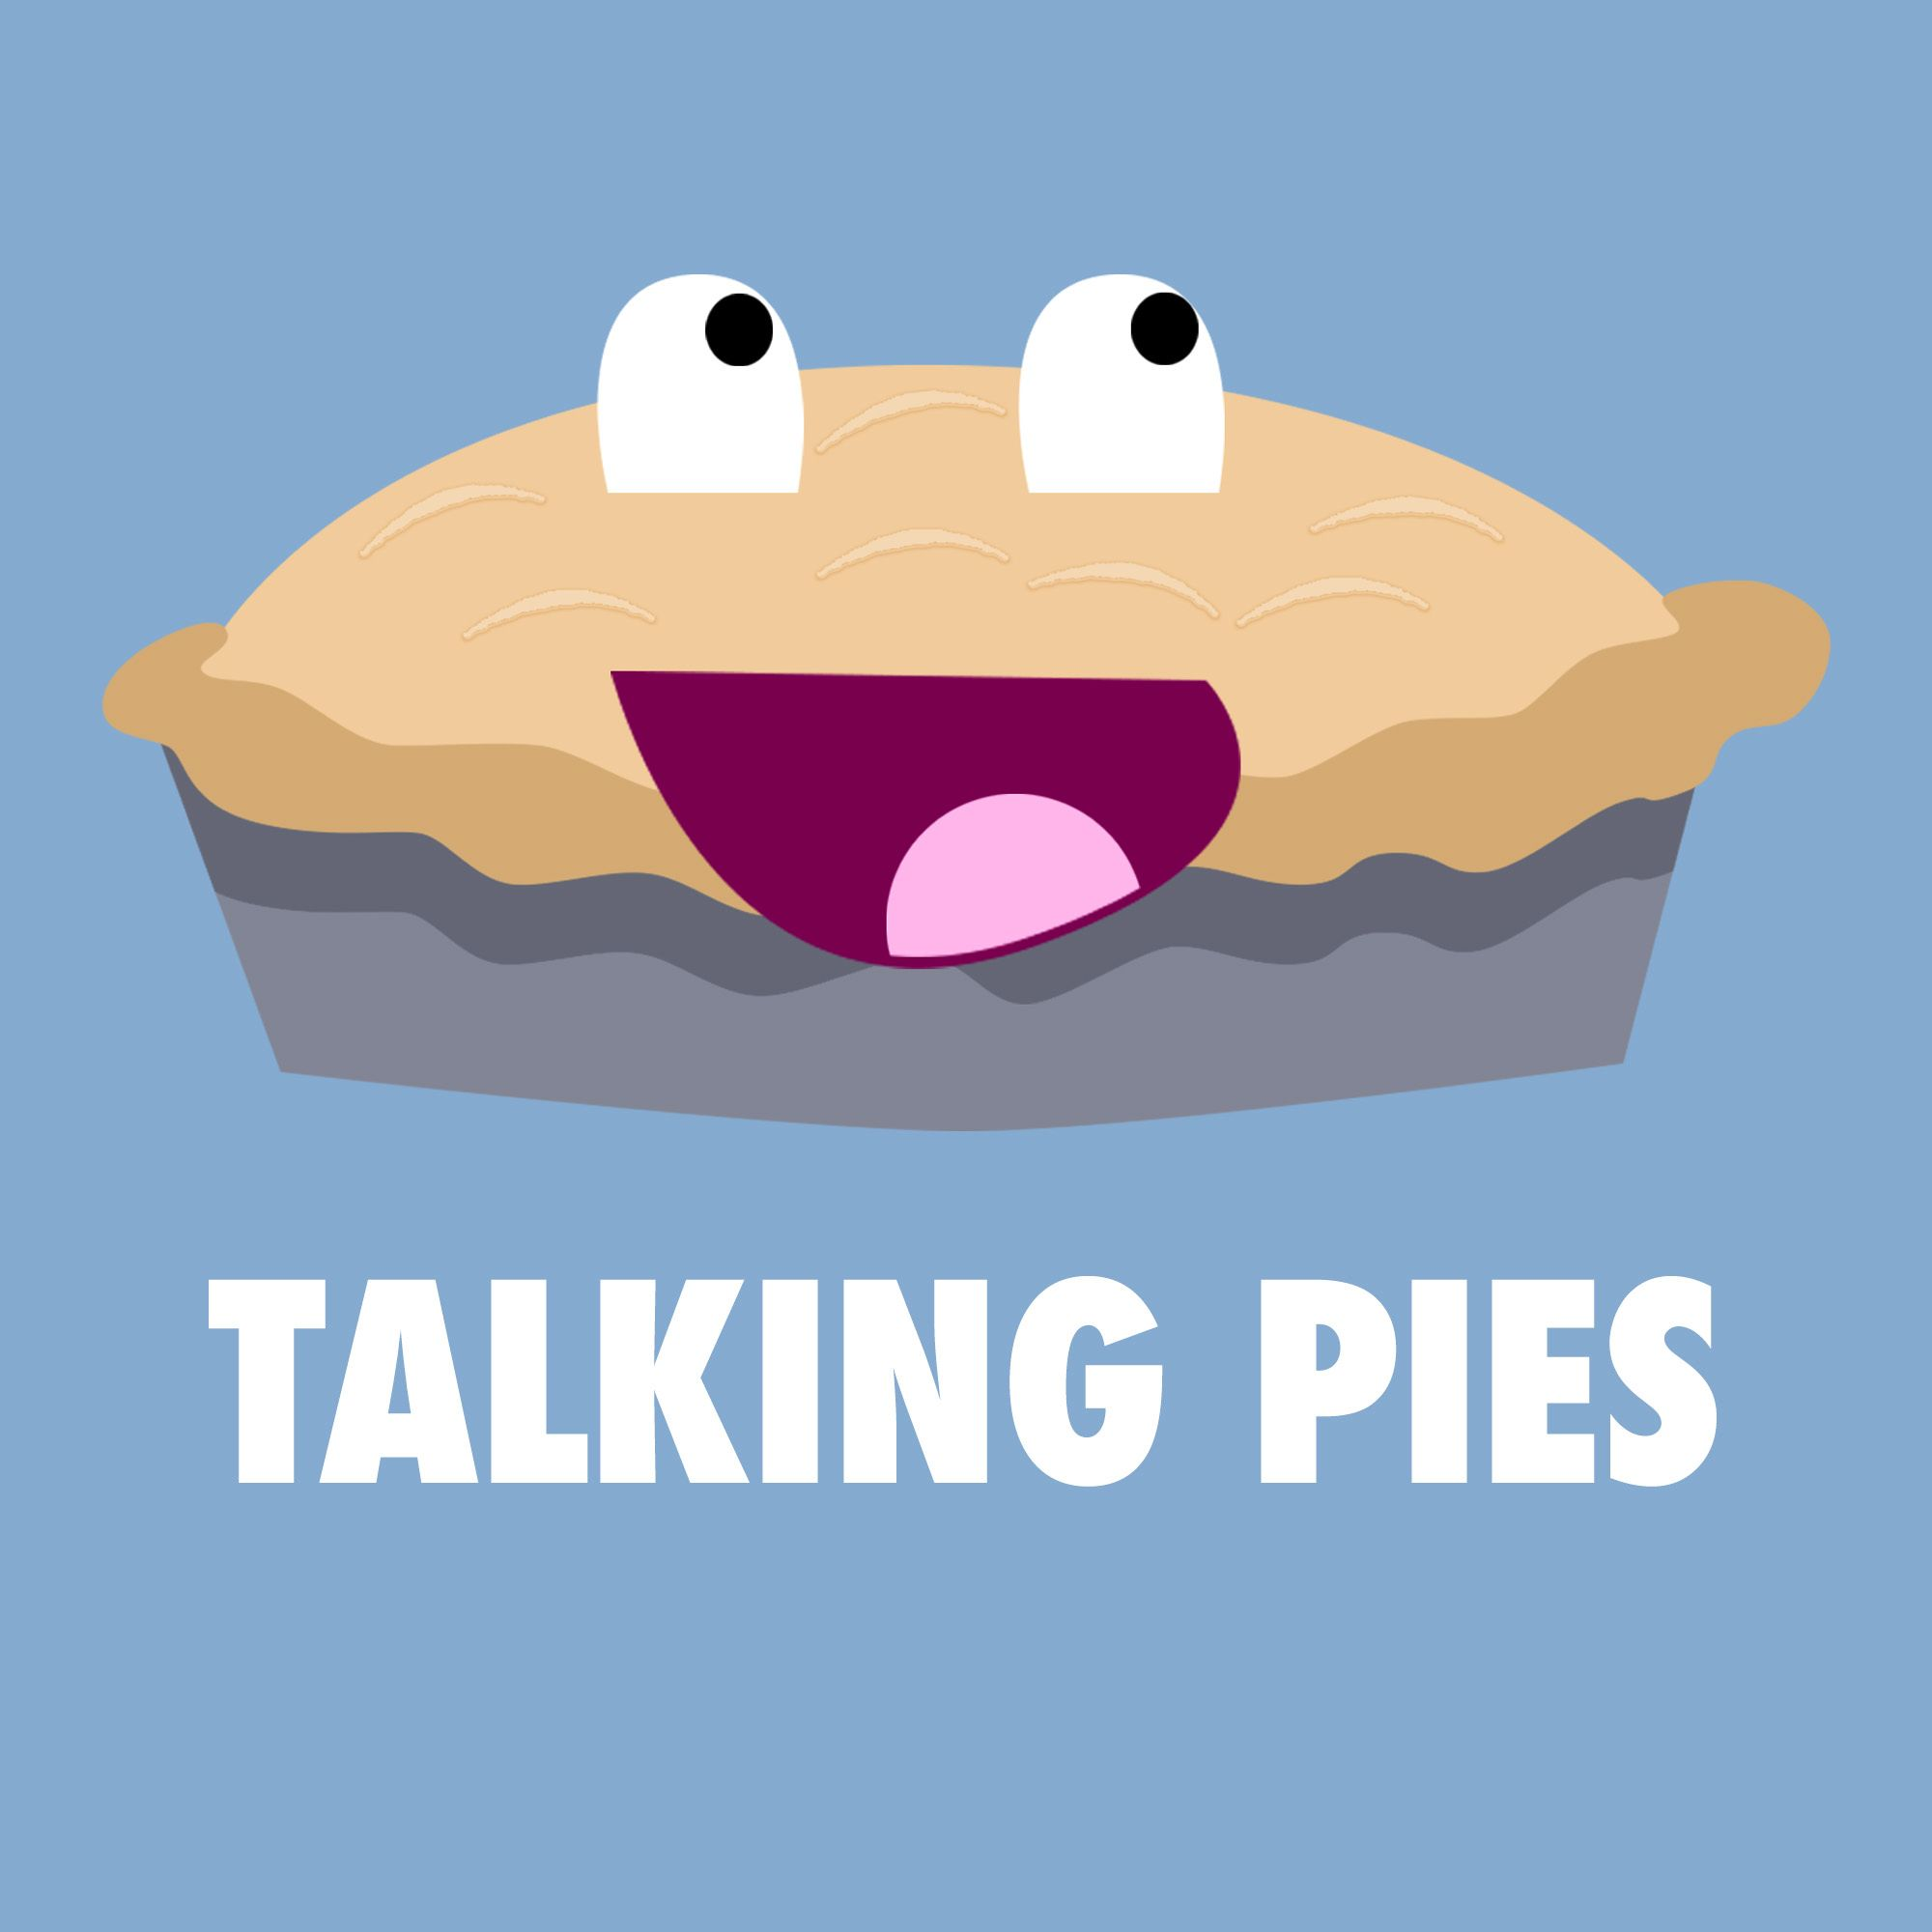 Talking Pies